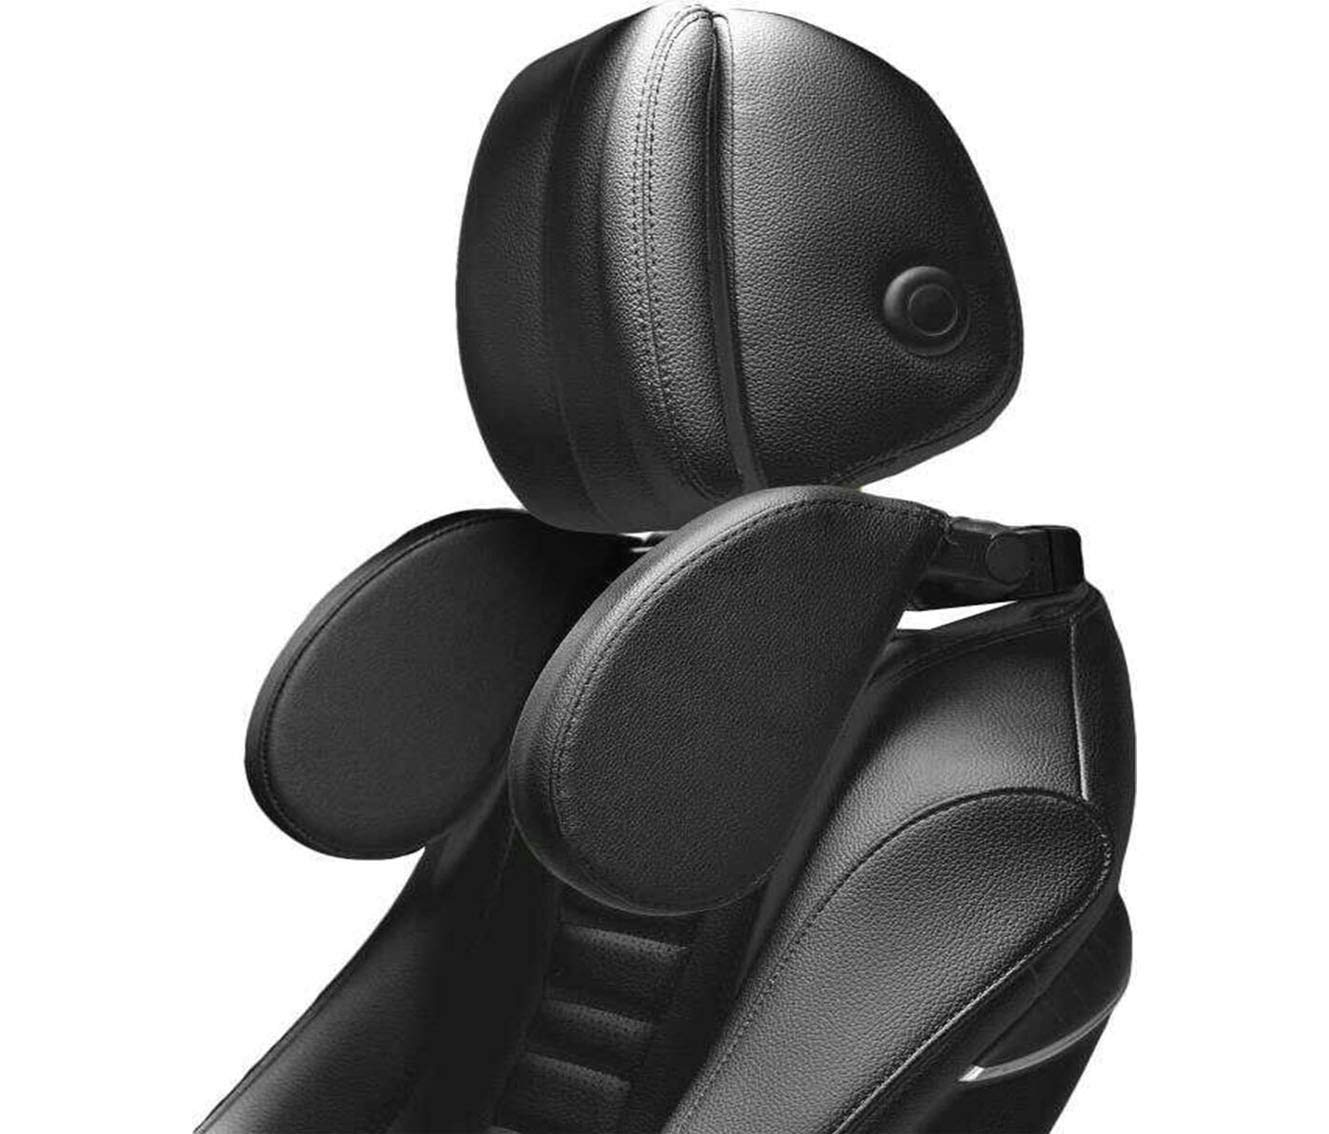 Ruya Car Headrest Pillow,Car Headrest Side Pillow,Car Seat Pillow,Car Headrest Neck Support,Travel Neck Pillow, Travel Sleeping Cushion for Kids Adults Black